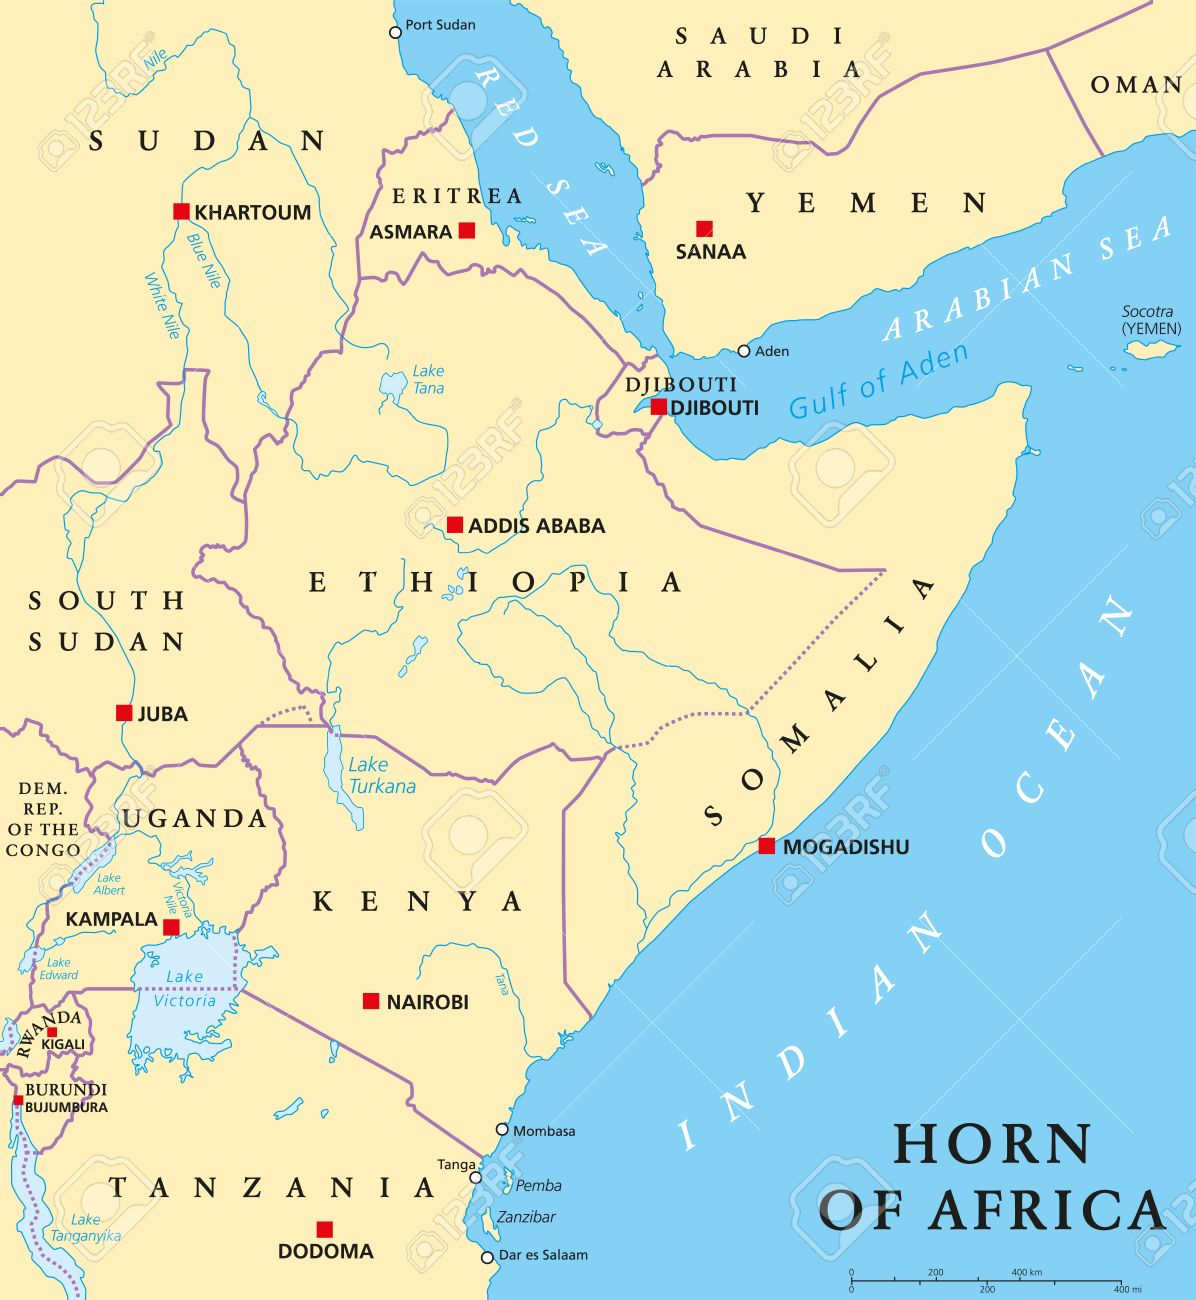 Horn of Africa peninsula political map with capitals, national.. Map Of Ancient Africa on geographical map of africa, current map of africa, blank map of africa, map of the founding of rome, map of africa with countries, climate map of africa, map of medieval africa, map of identity, map of contemporary africa, big map of africa, map of north america, map of cush, map of italian africa, map of norway africa, map of mesopotamia, map of china, map of middle east, map of east africa, map of earth africa, map of historical africa,